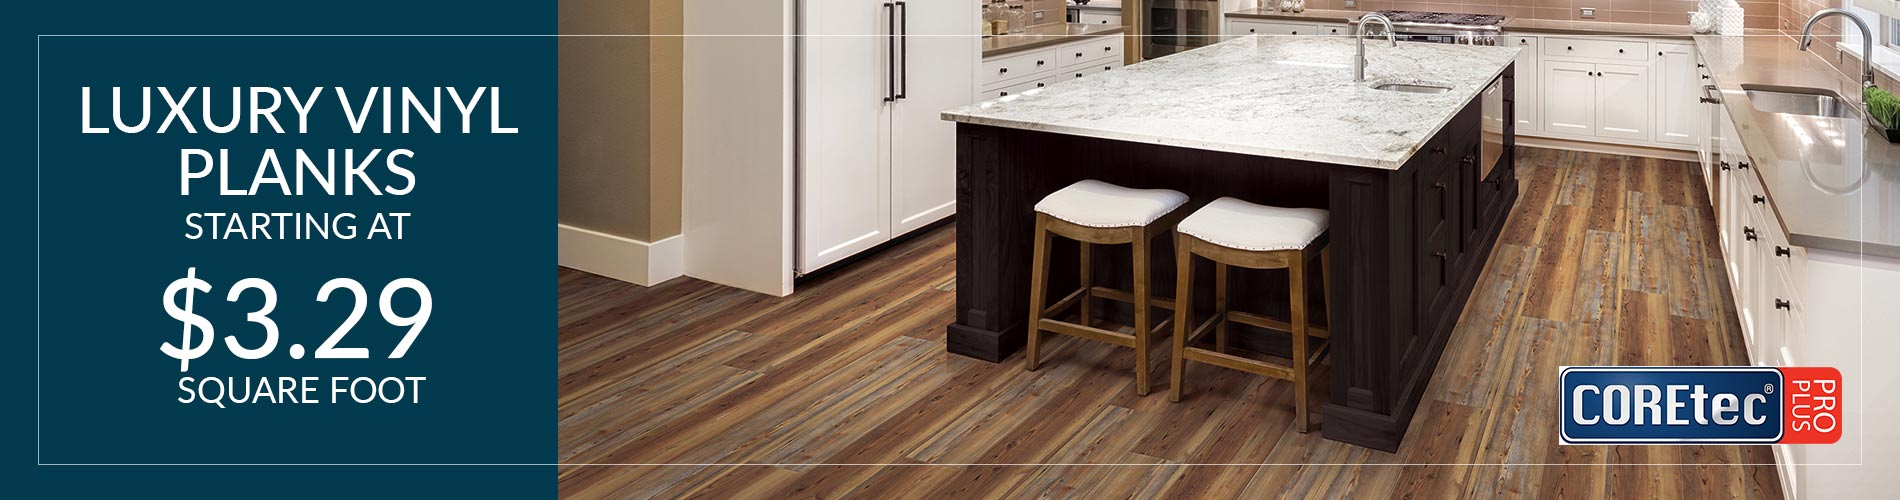 COREtec Pro Plus Luxury Vinyl Plank on sale now starting at only $3.29 sq.ft. - Get this amazing deal and others like it only at BK Flooring in Evansville, Indiana